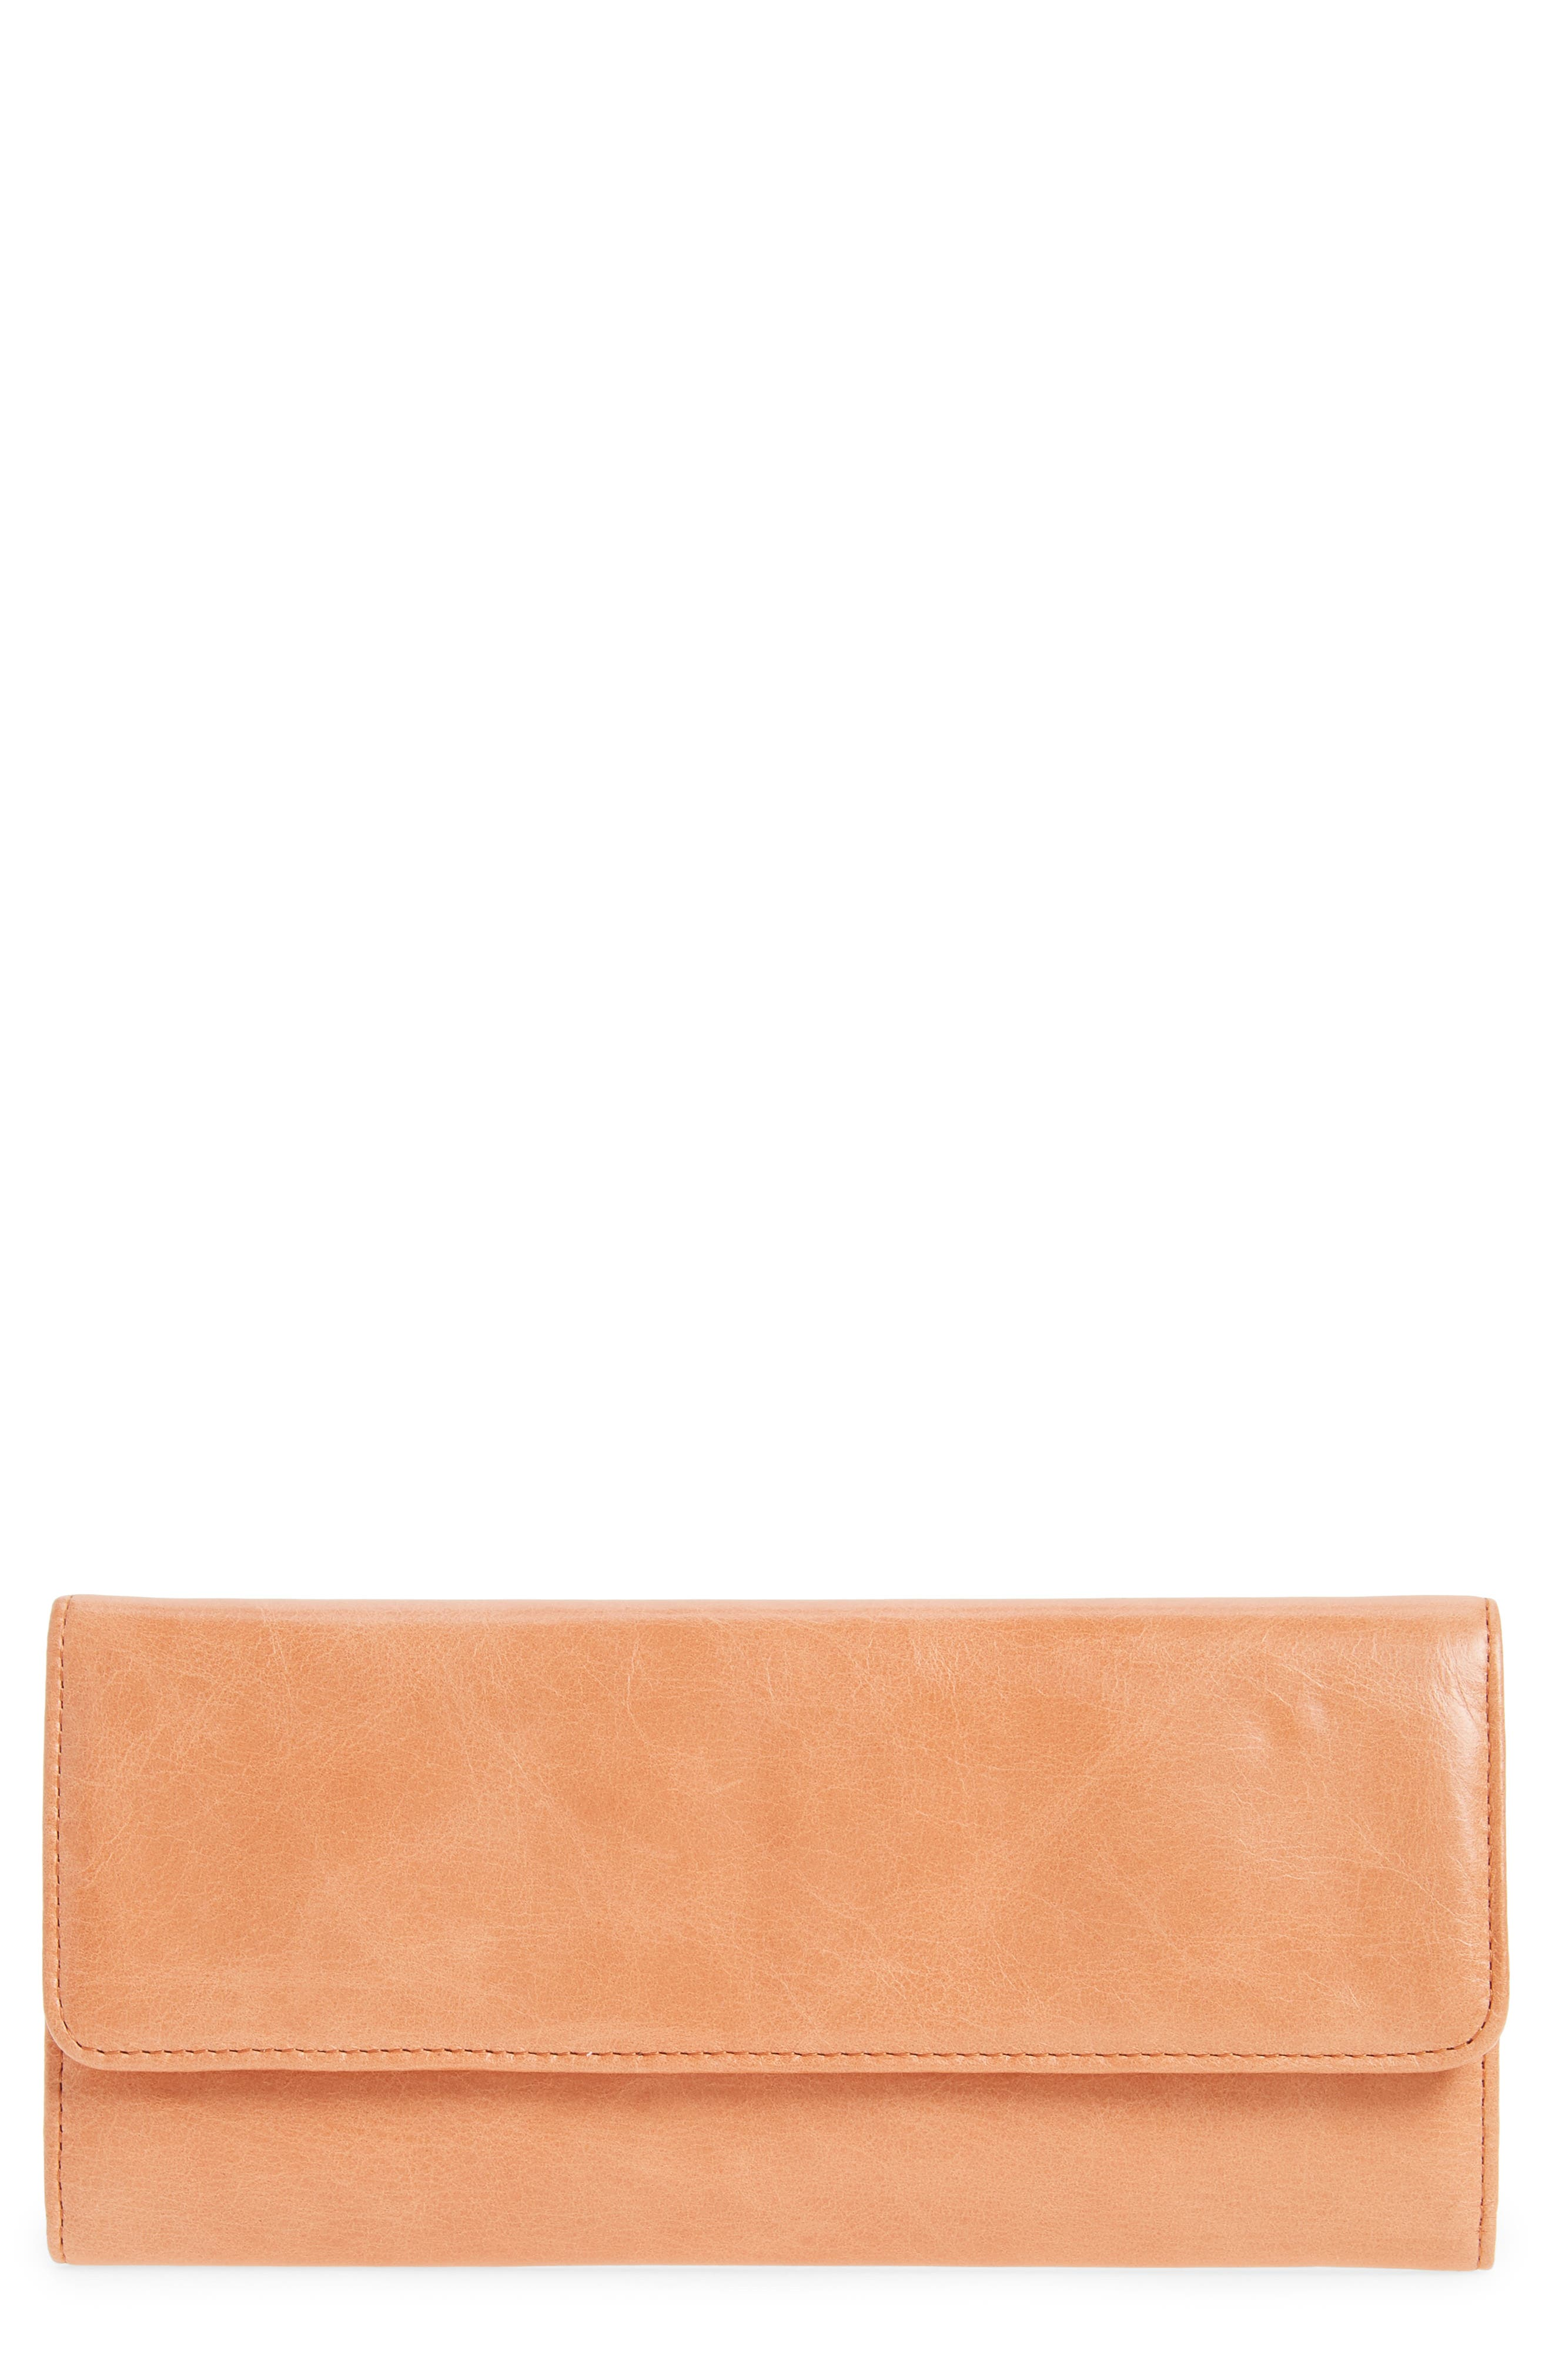 Alternate Image 1 Selected - Hobo 'Sadie' Leather Wallet